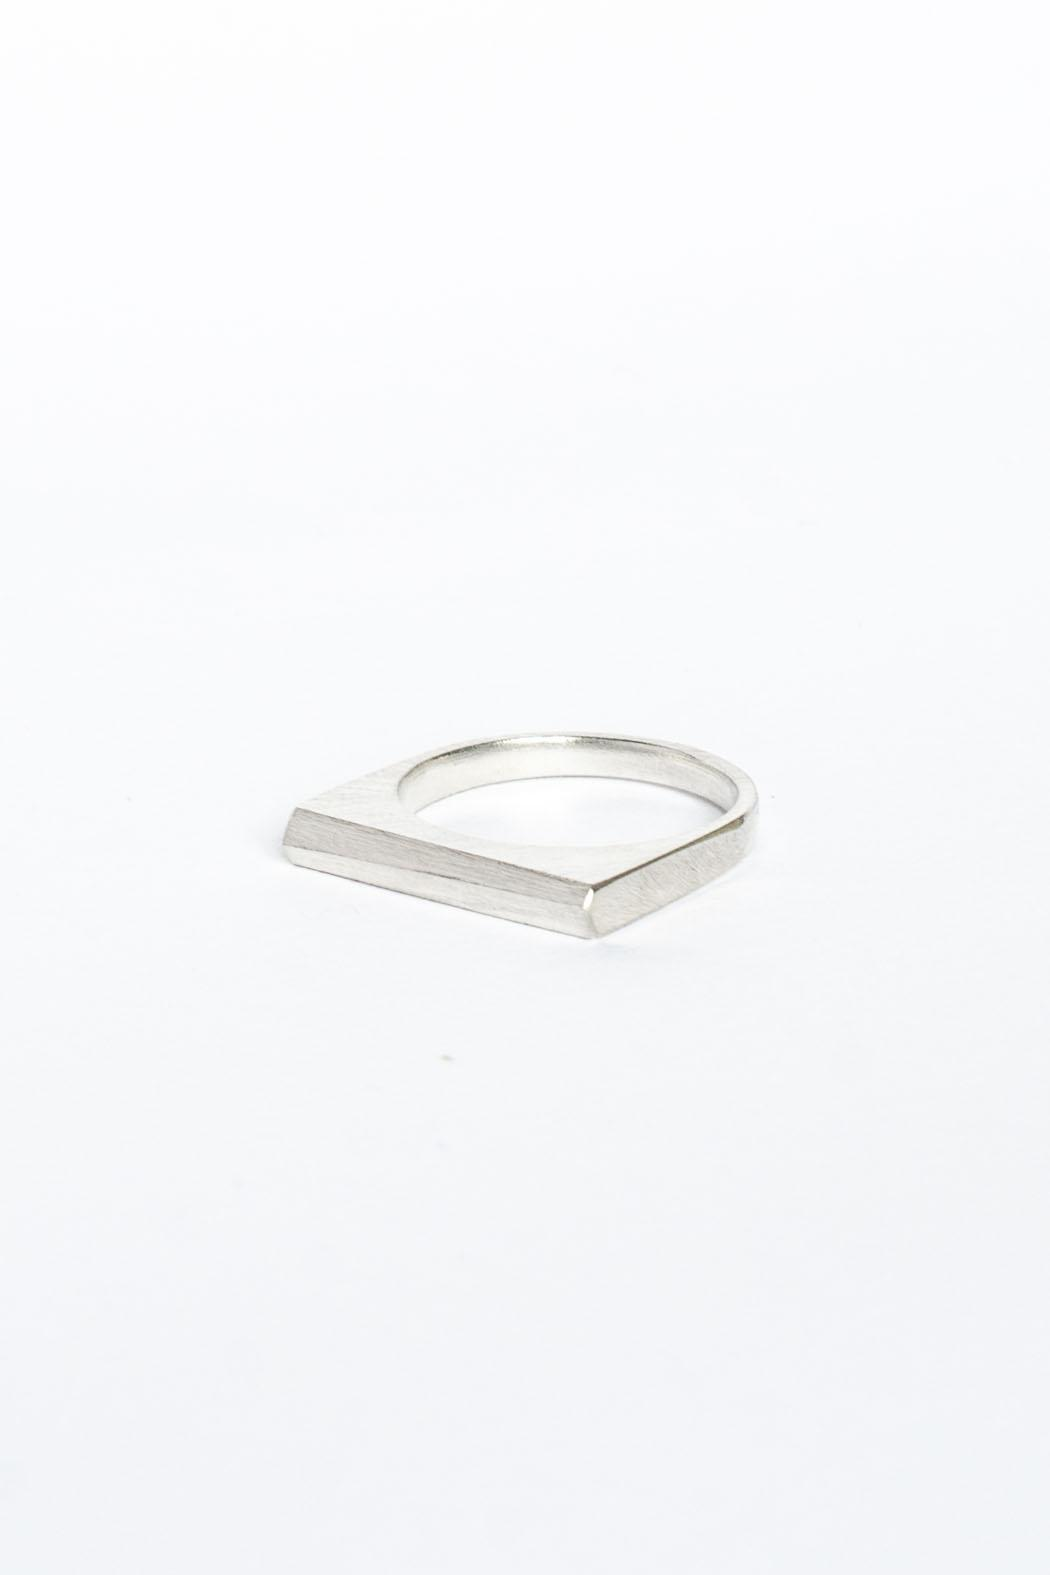 Maria Guenther Silver Angle Ring - Main Image